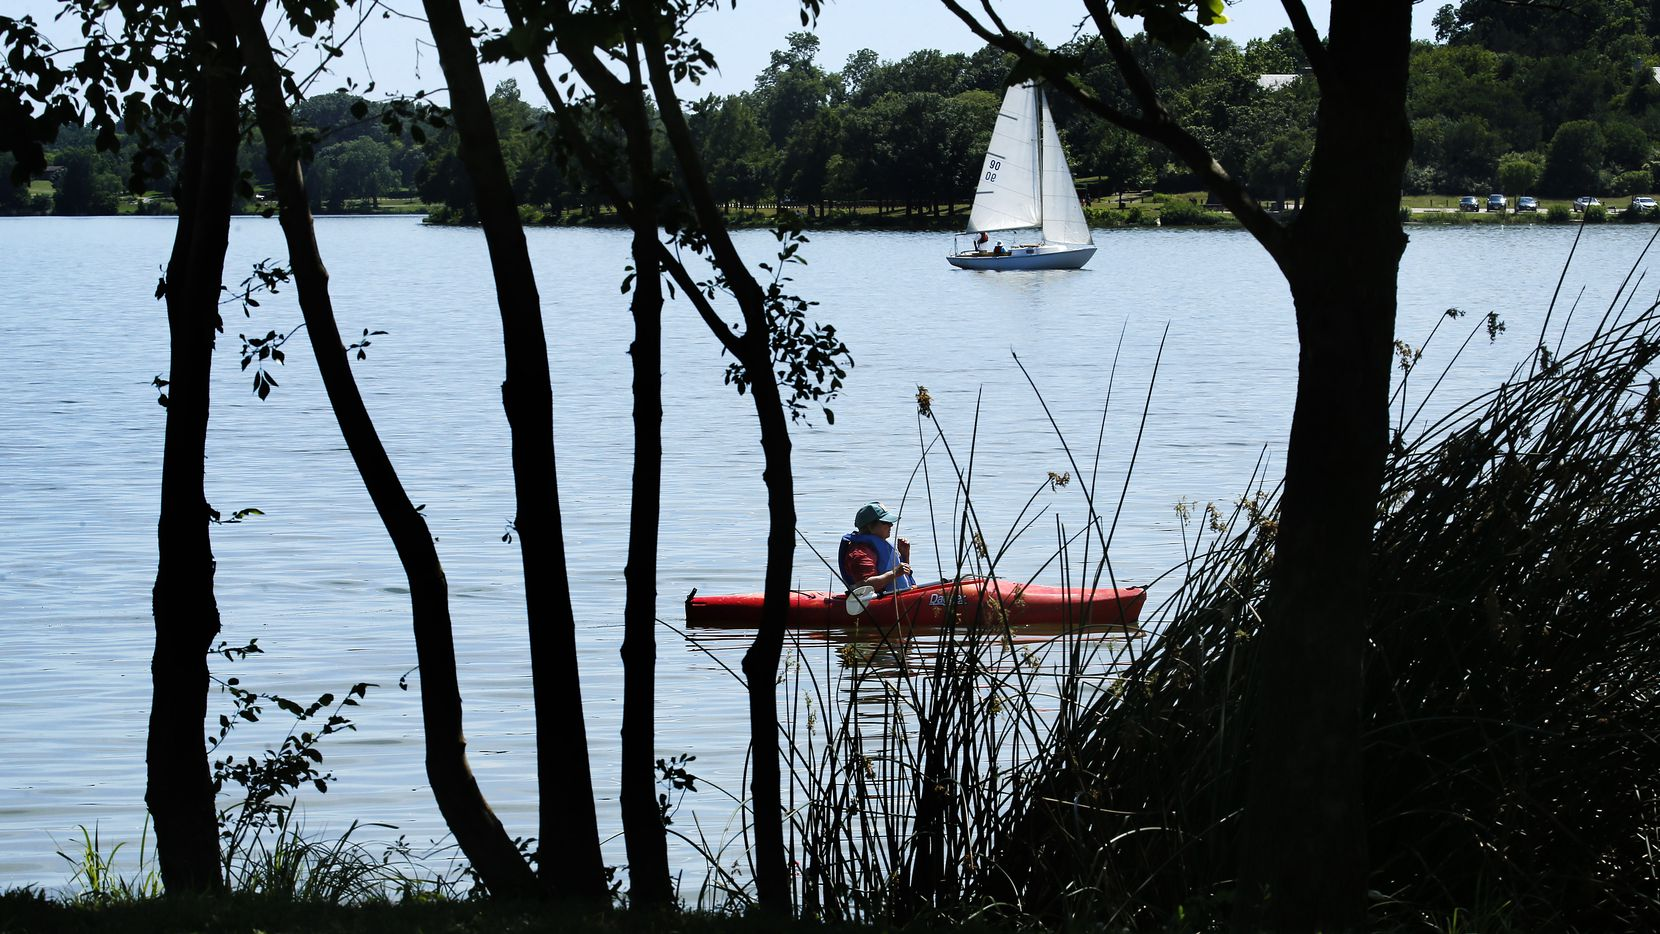 A kayaker and sailboat take to the water at White Rock Lake in Dallas, Wednesday, May 27,  2020. (Tom Fox/The Dallas Morning News)